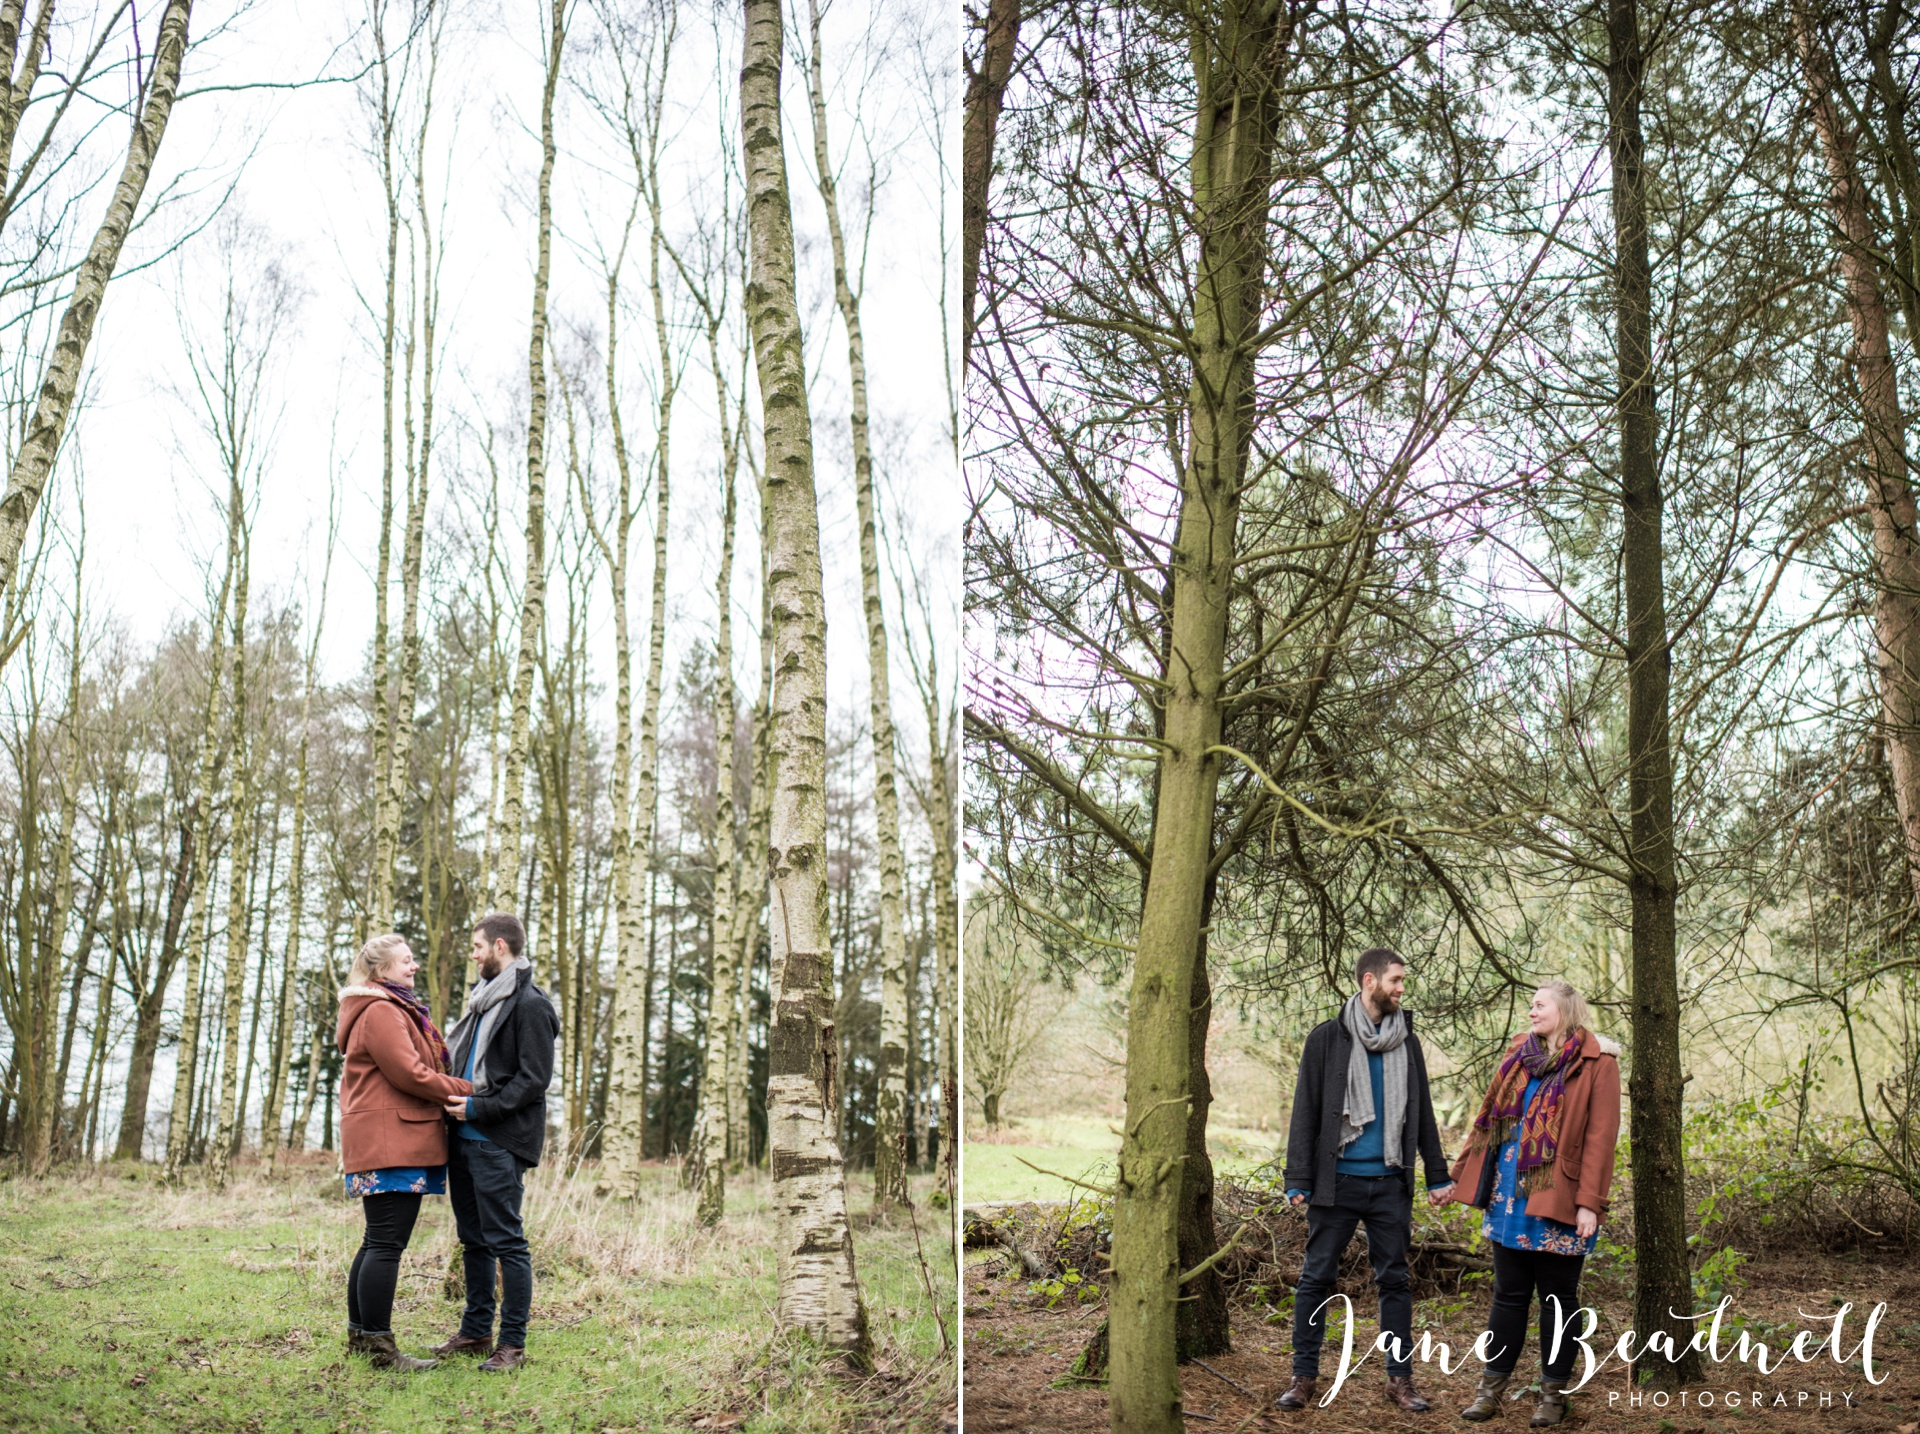 engagement photography Chevin jane beadnell wedding photographer Otley_0002